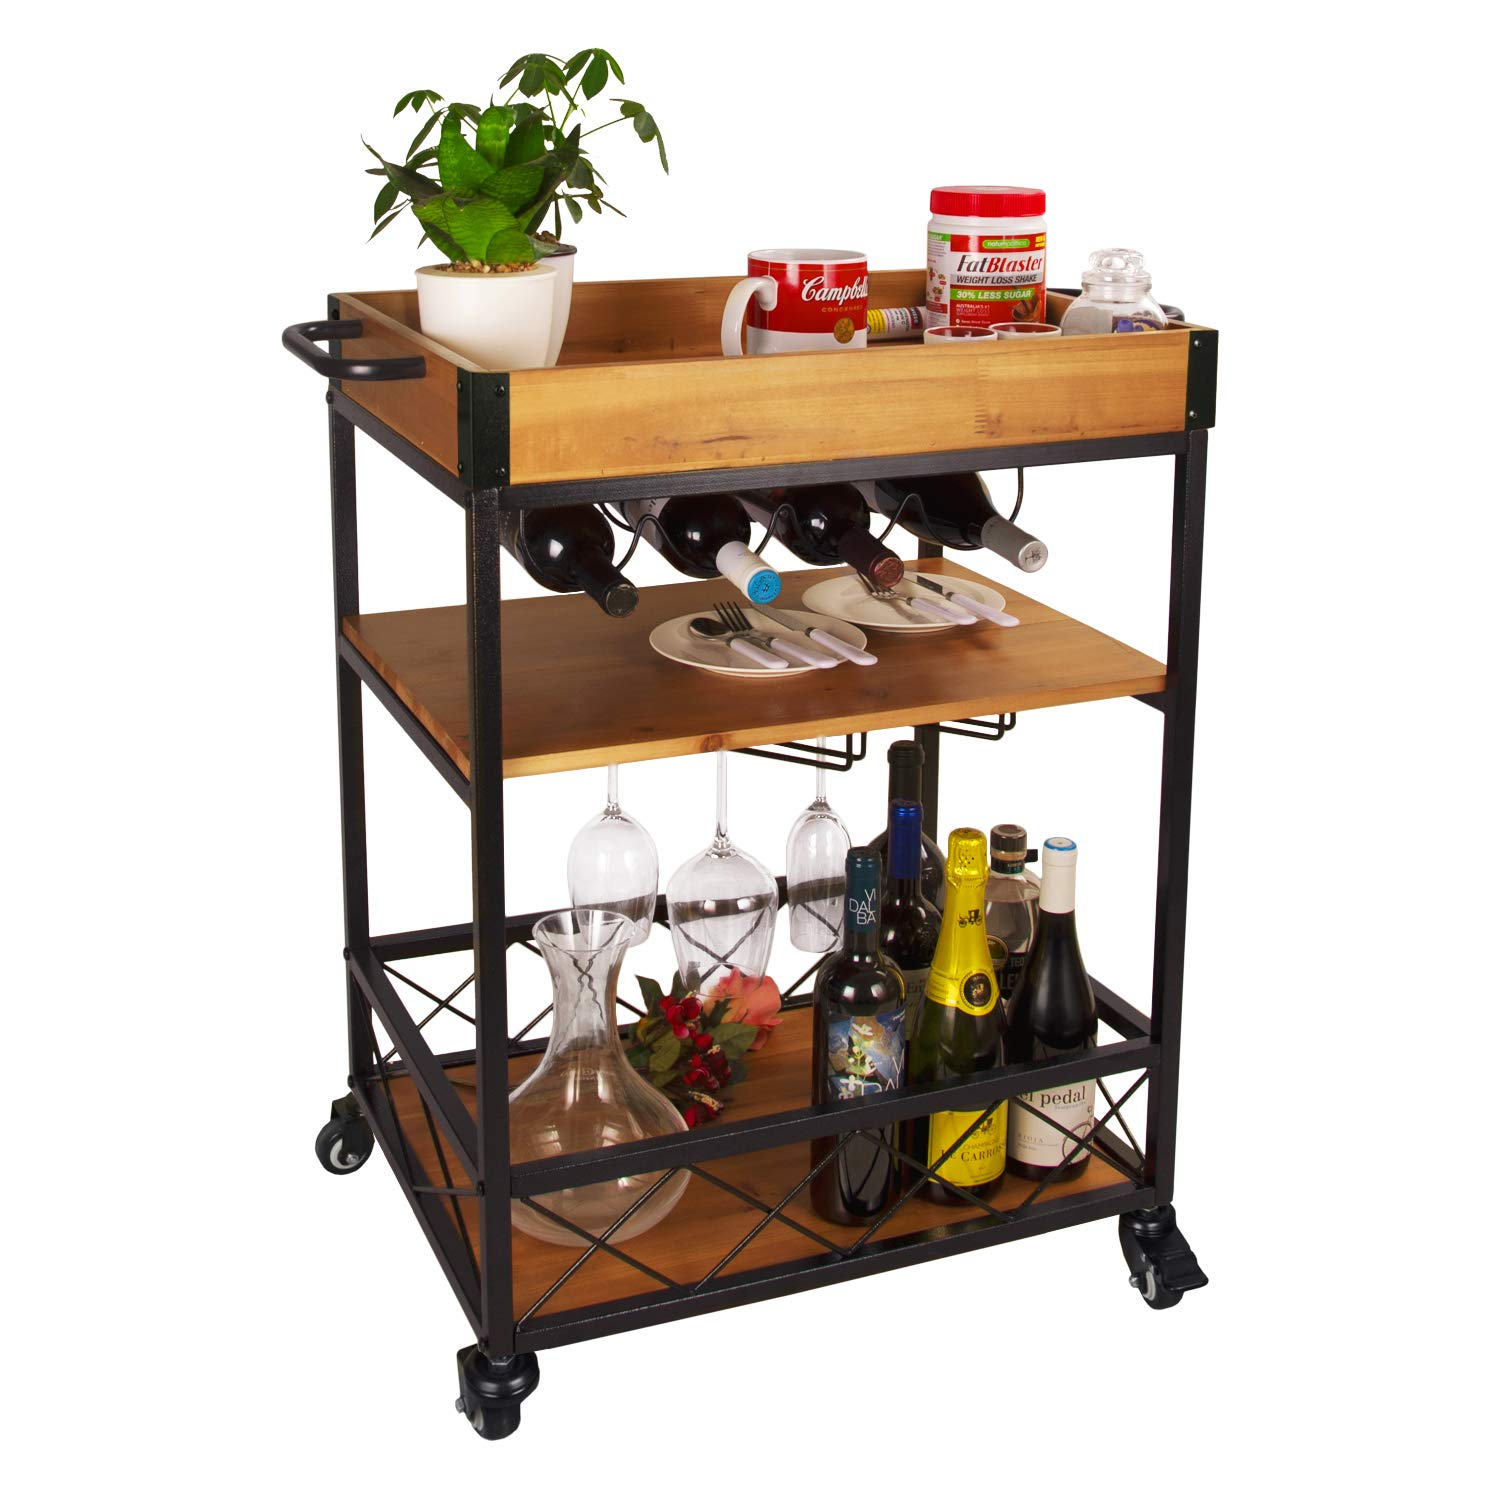 Elevens 3 Tier Rolling Utility Storage Cart-Kitchen Serving Bar Cart with Bottle Holder Light Wood